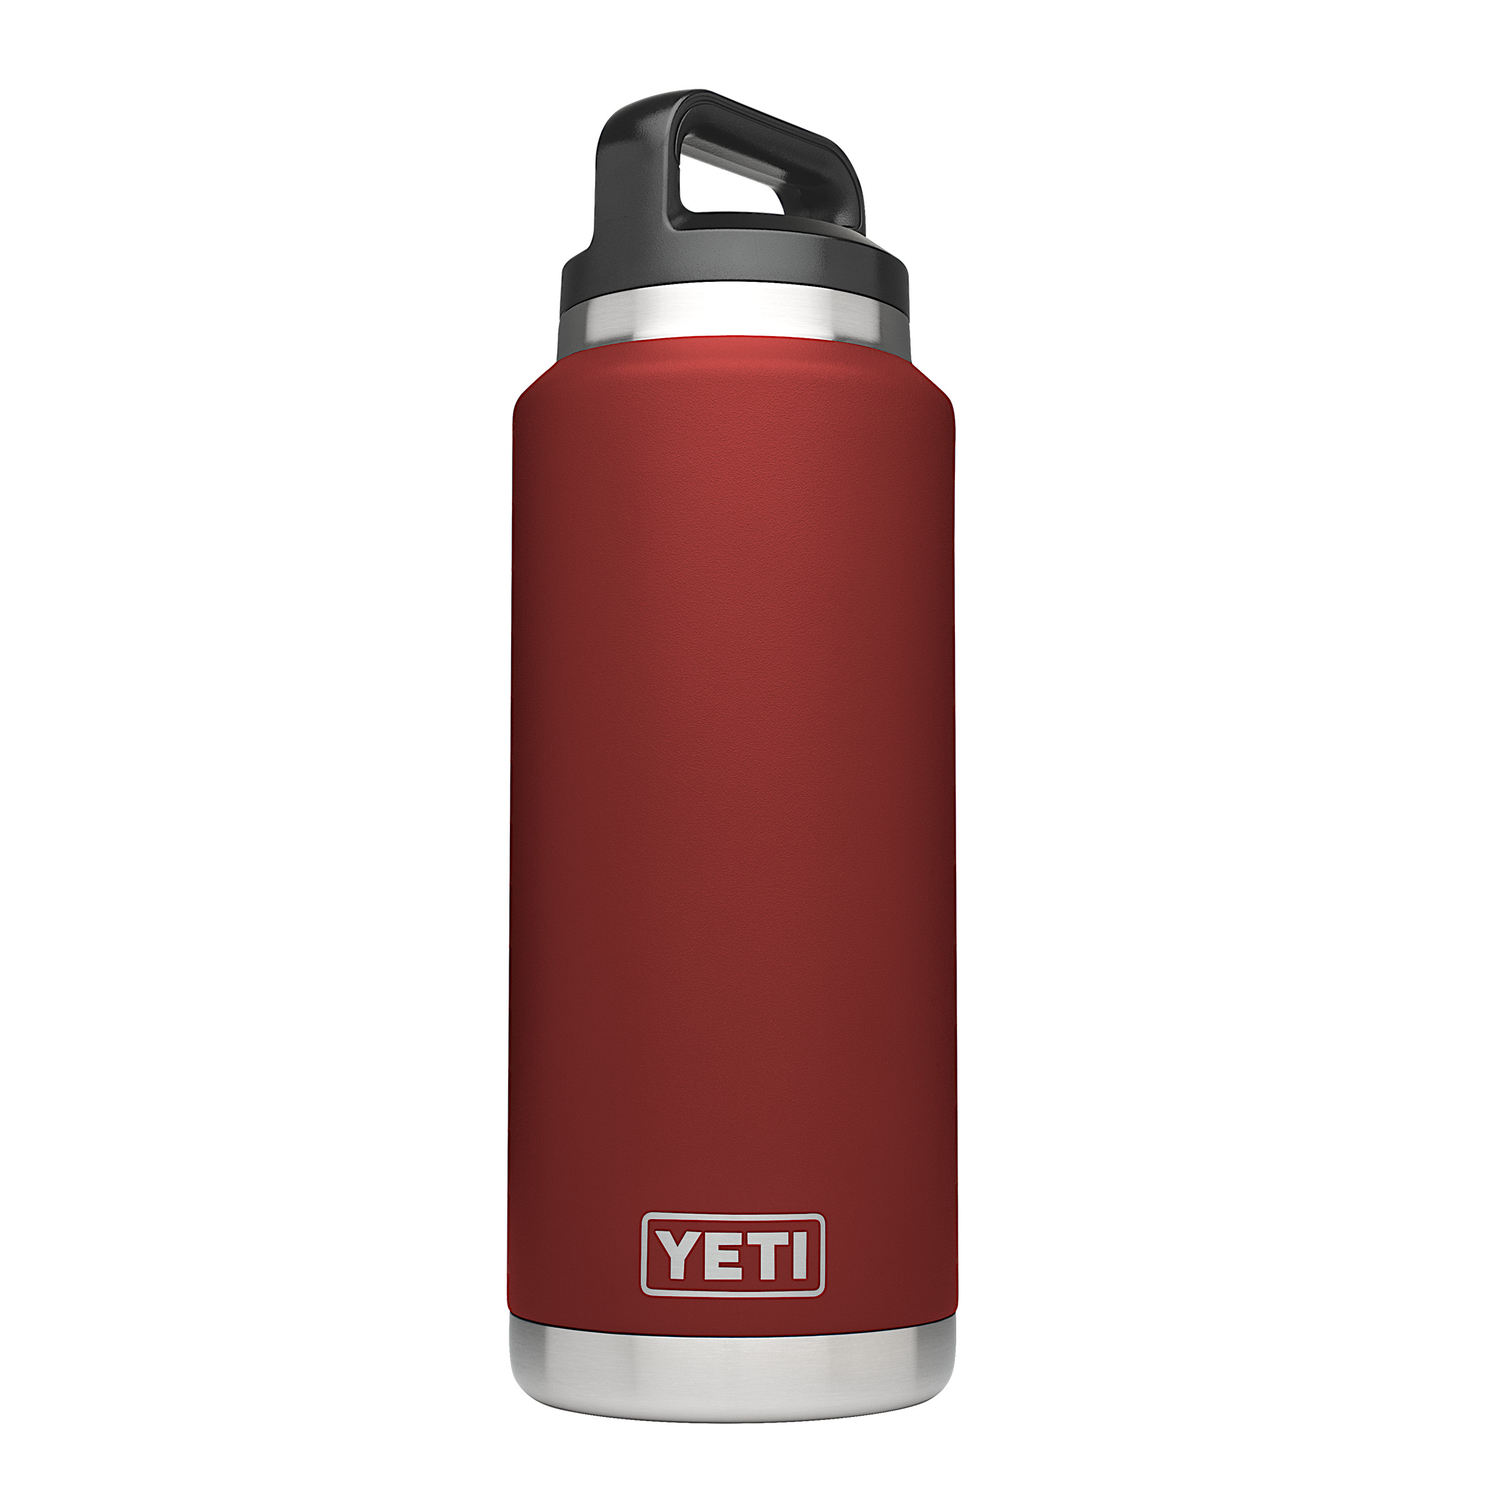 YETI  Rambler  Stainless Steel  Brick Red  BPA Free 26 oz. Insulated Bottle